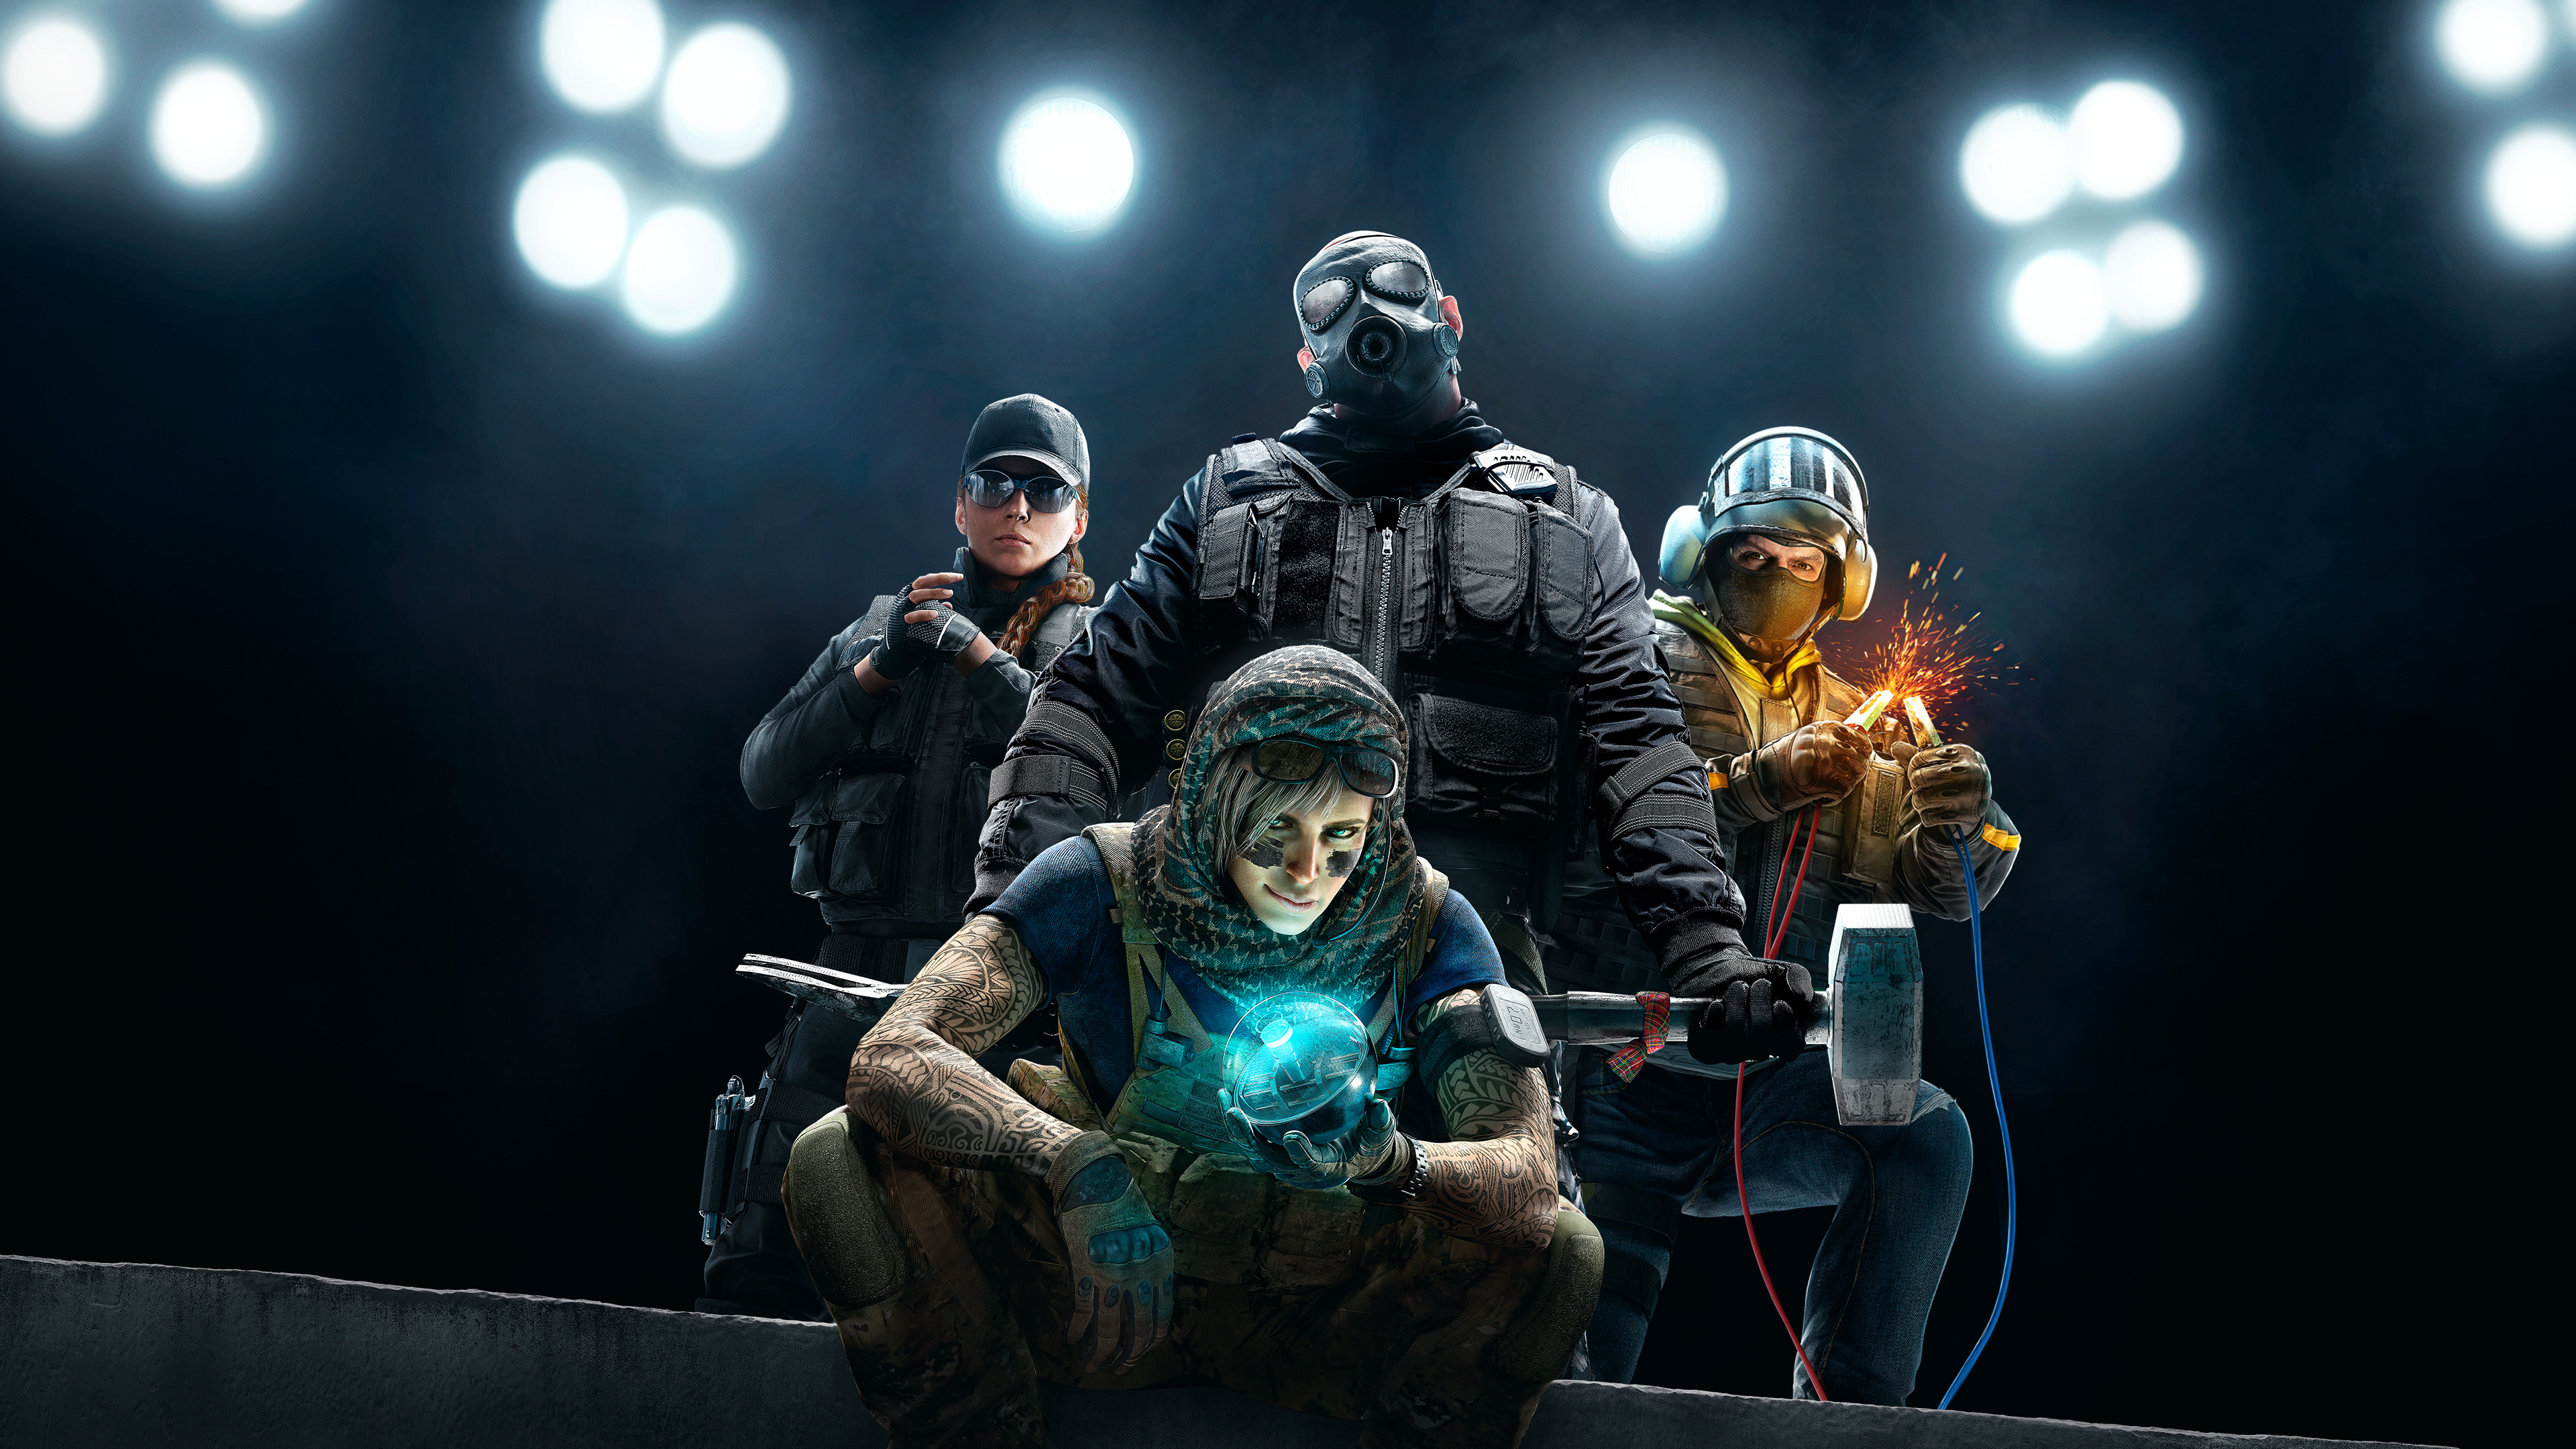 Wallpaper 4k Tom Clanycs Rainbow Six Siege 4k 2019 2019